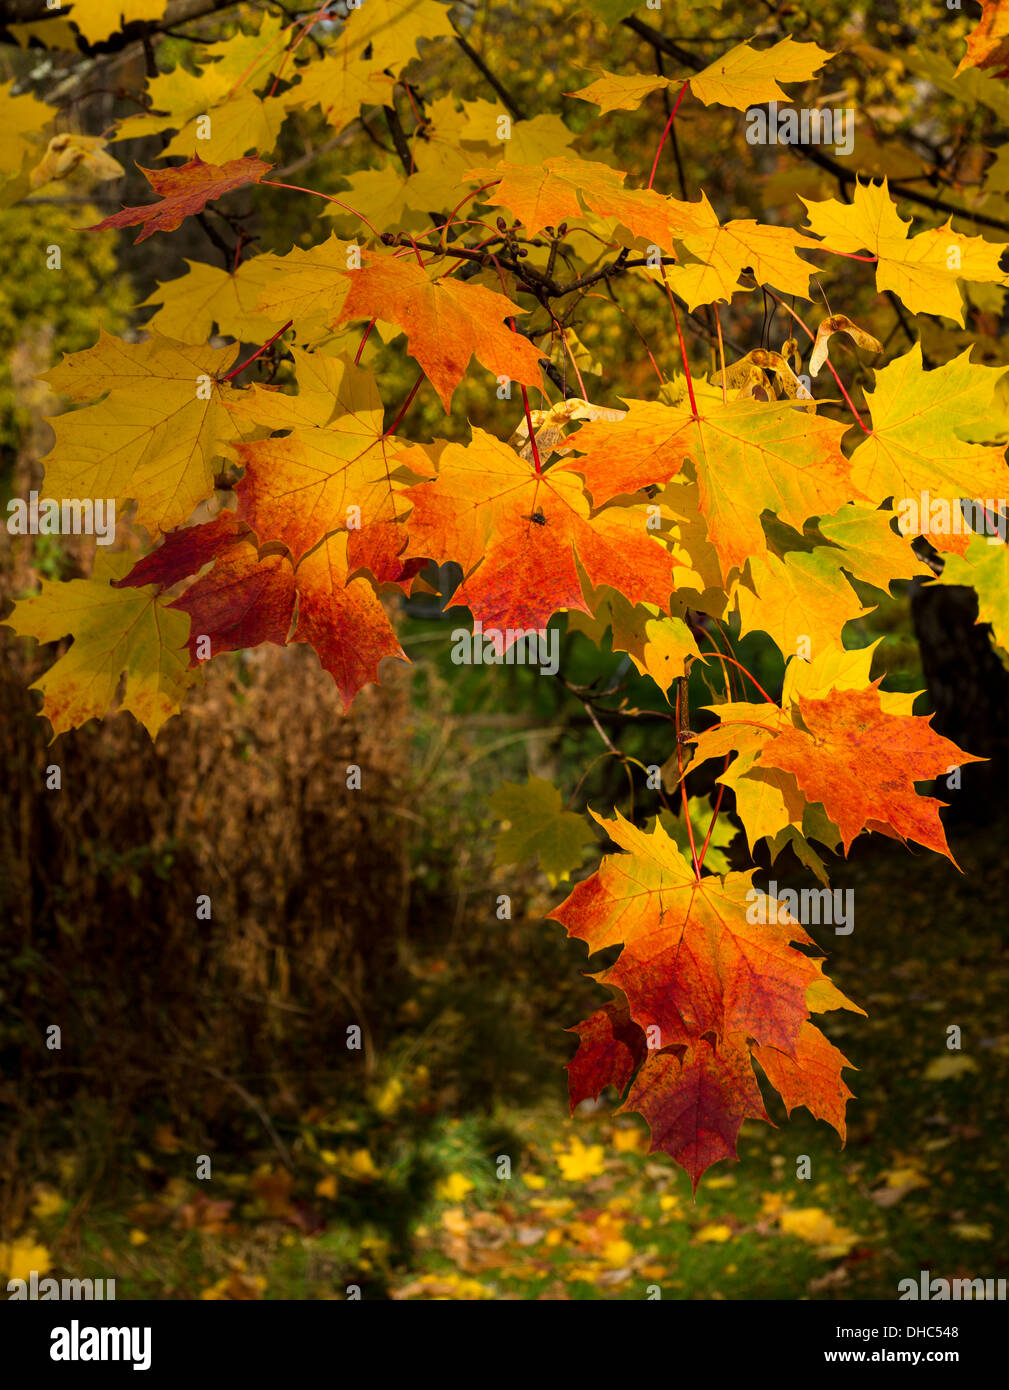 MAPLE [ACER] LEAVES AND SEEDS IN VIBRANT AUTUMNAL COLOURS Stock Photo